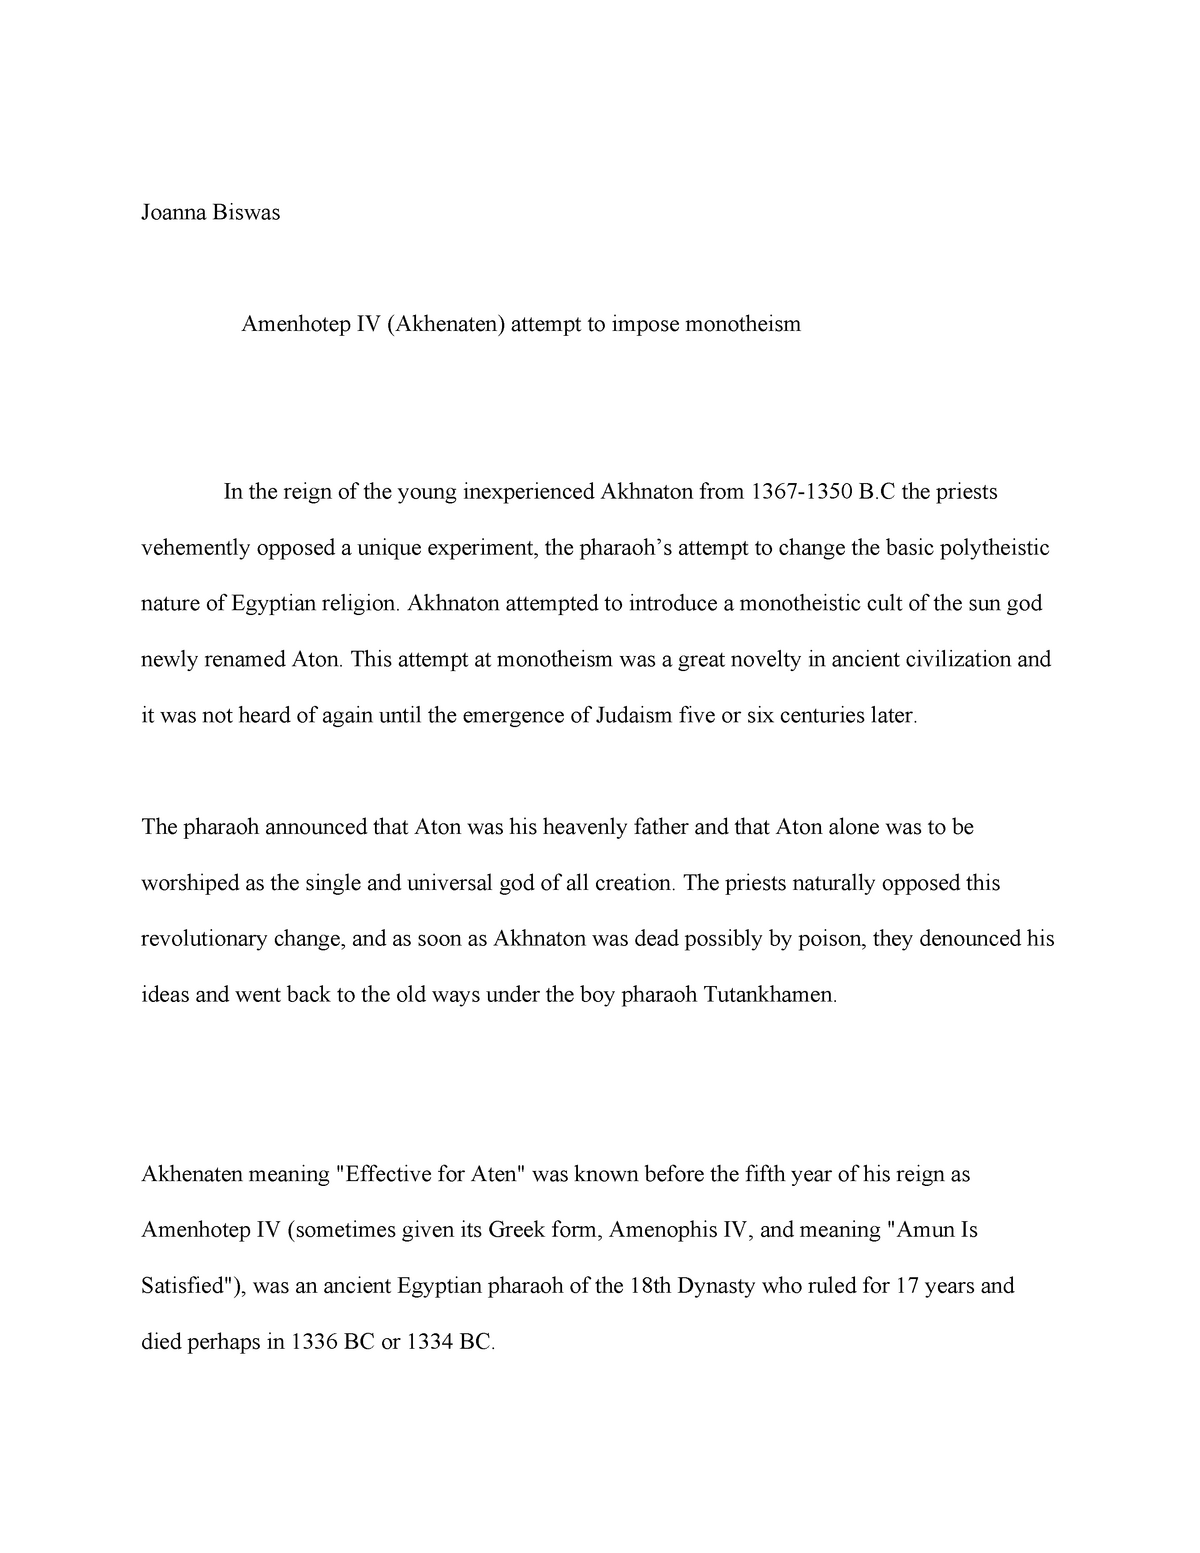 Hist essay 2 - Amenhotep IV - HIST 110: Introduction To